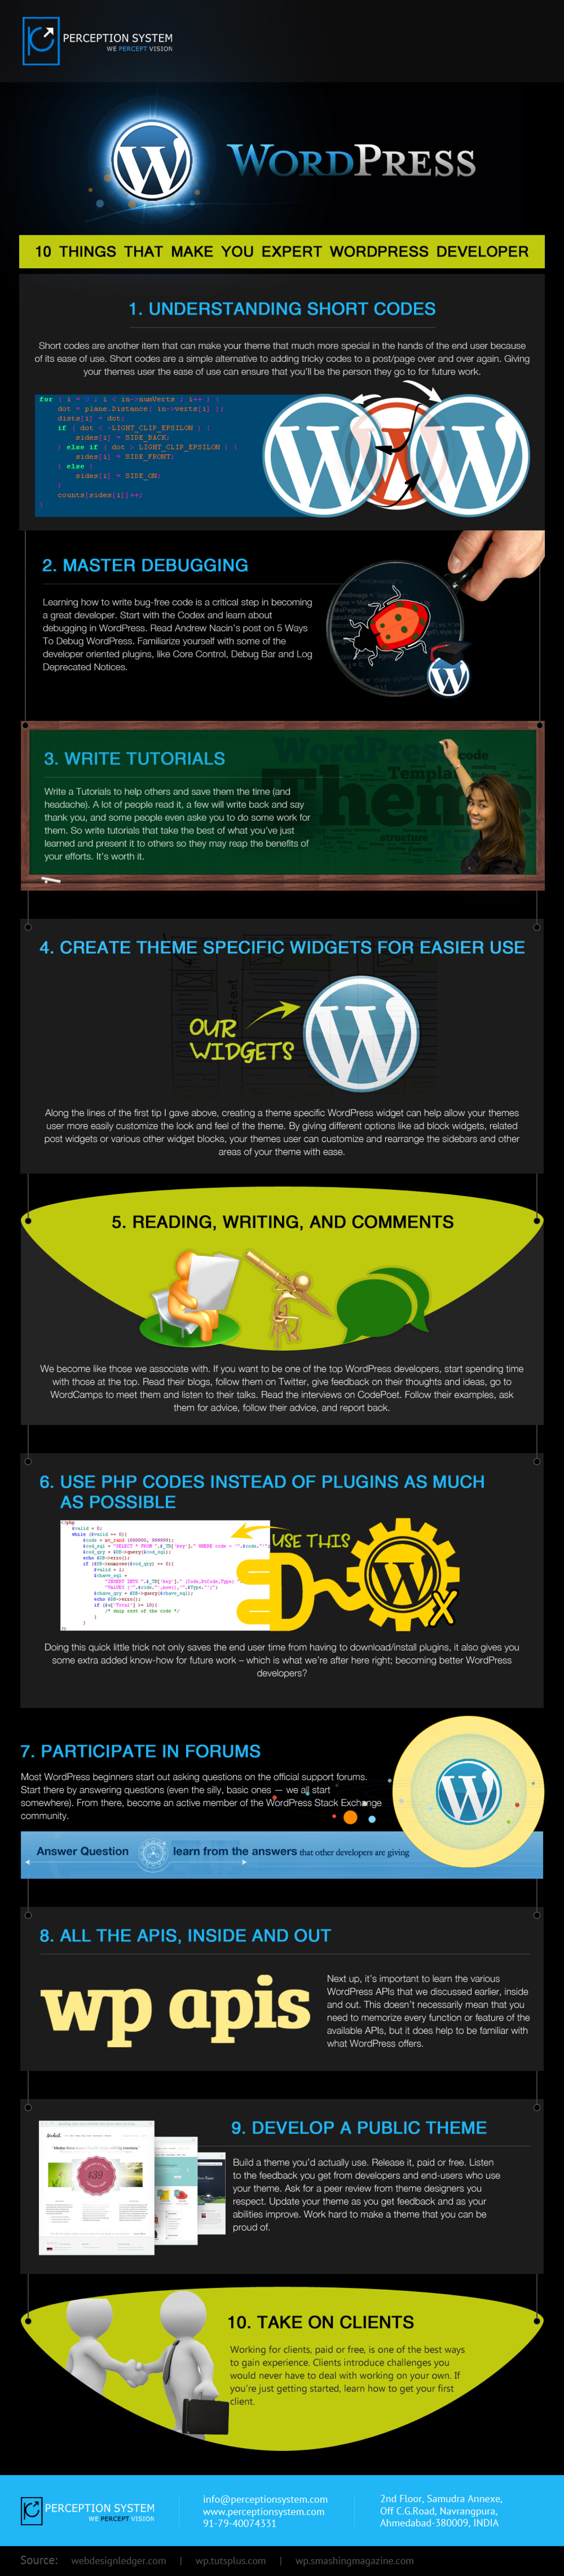 10 Things that Make You Expert WordPress Developer Infographic